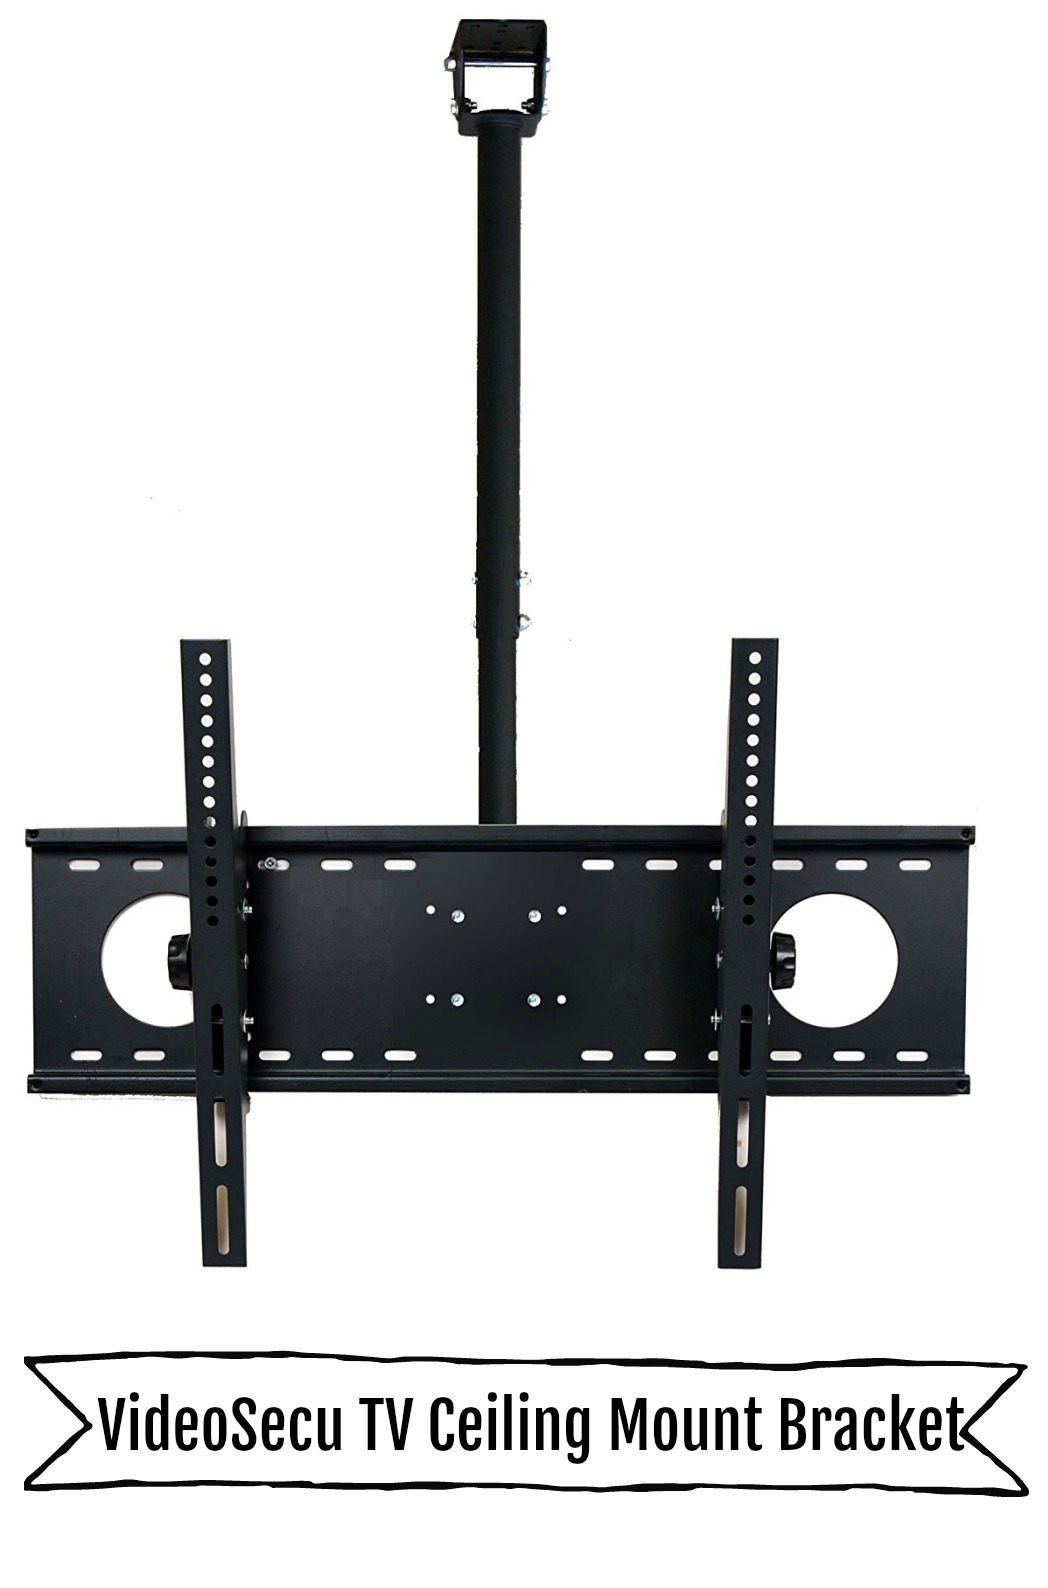 VideoSecu TV Ceiling Mount Bracket